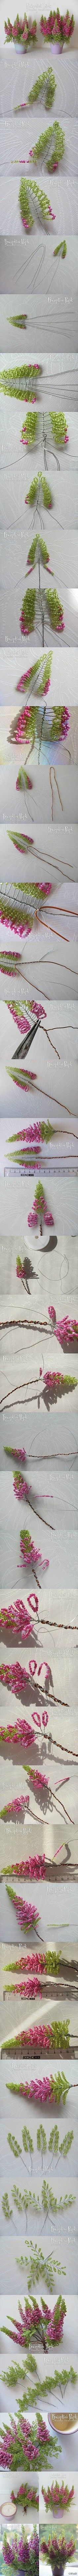 Seed bead and wire plant